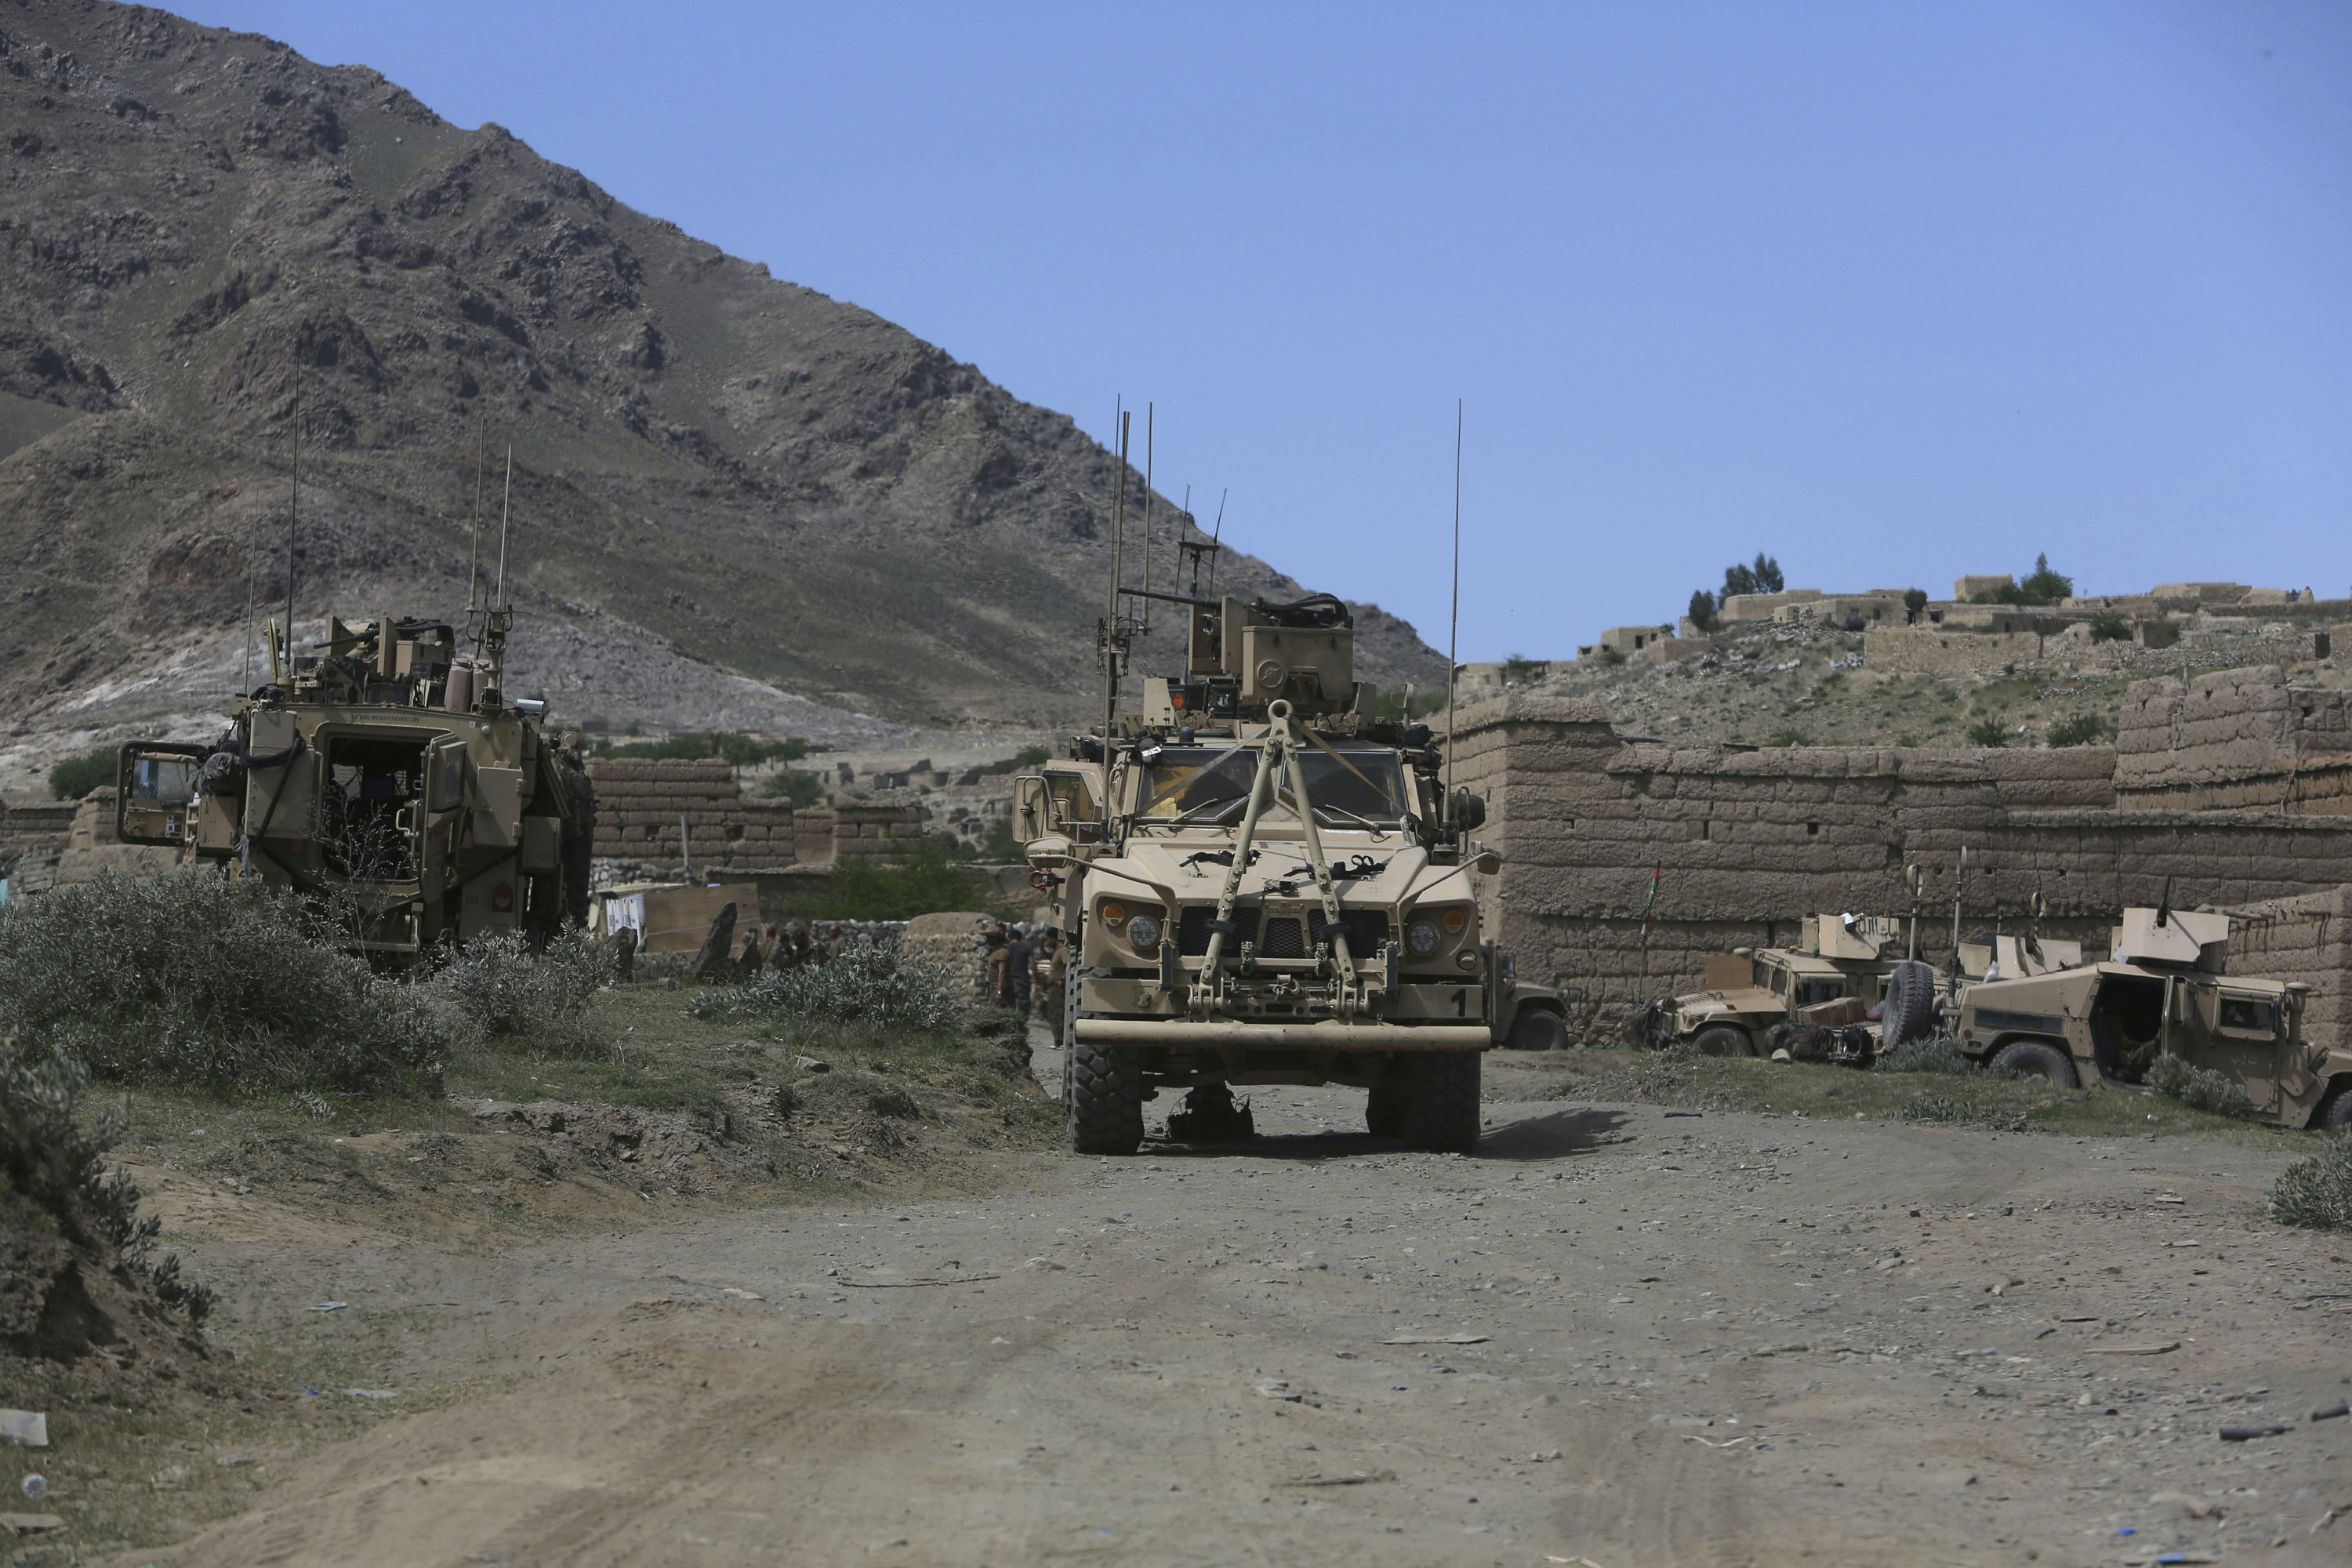 Afghan official: Massive US bomb death toll rises to 94